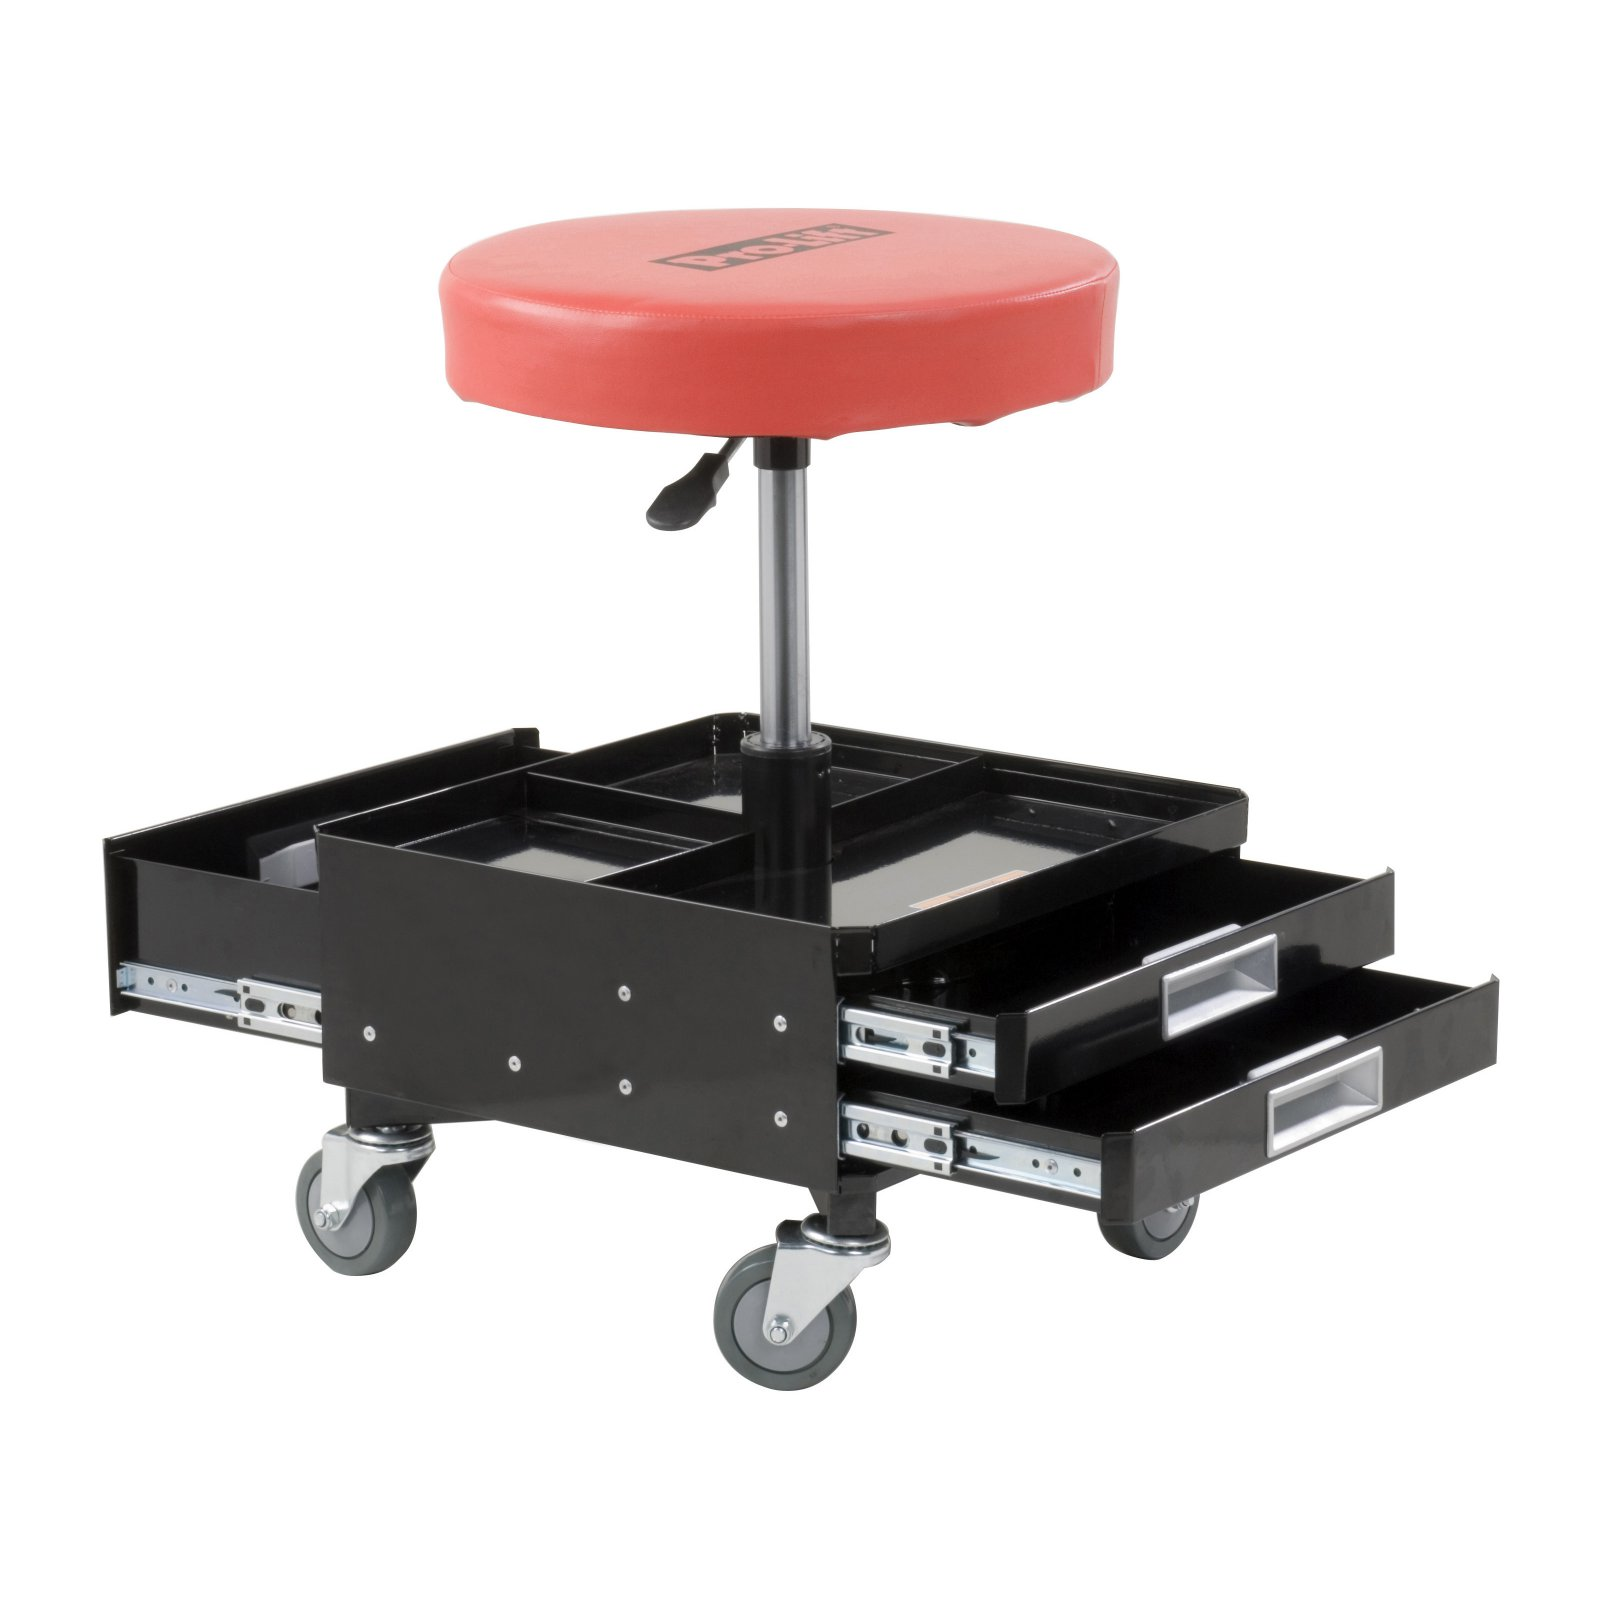 Pro-Lift C-3100 Grey Pneumatic Chair with Dual Tool Tray, 300 lb. Capacity